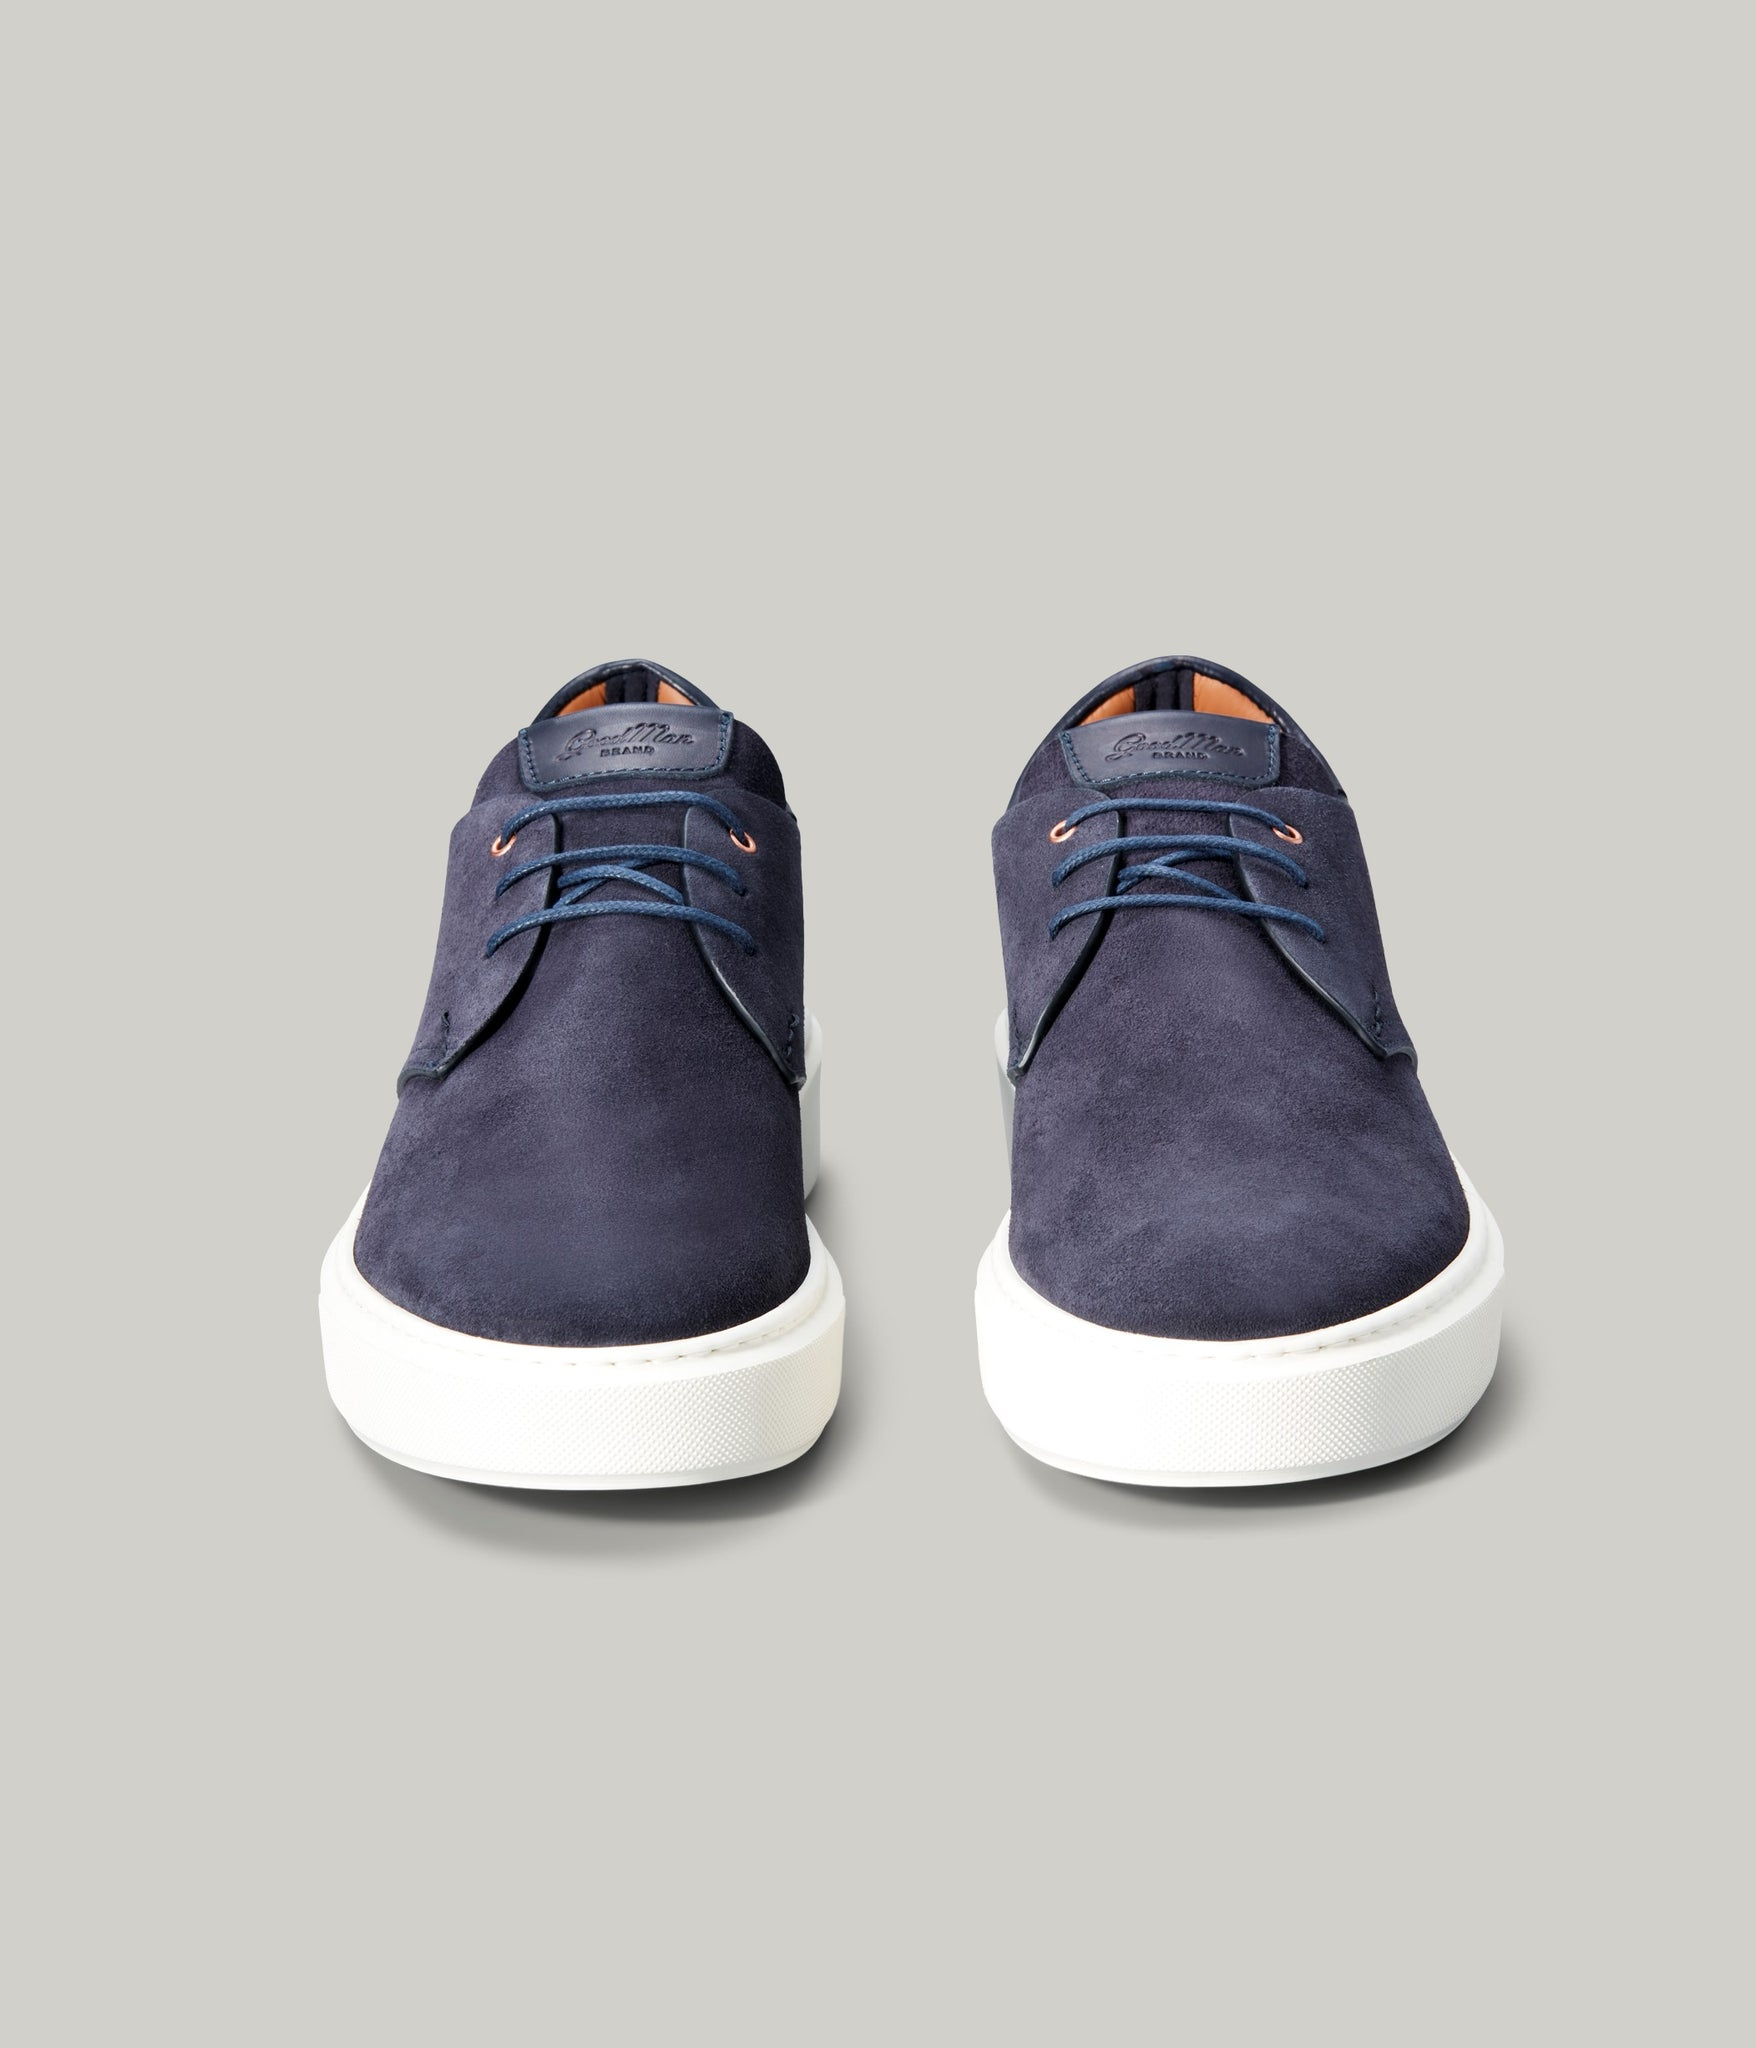 Modern Hybrid Derby Shoe - Navy